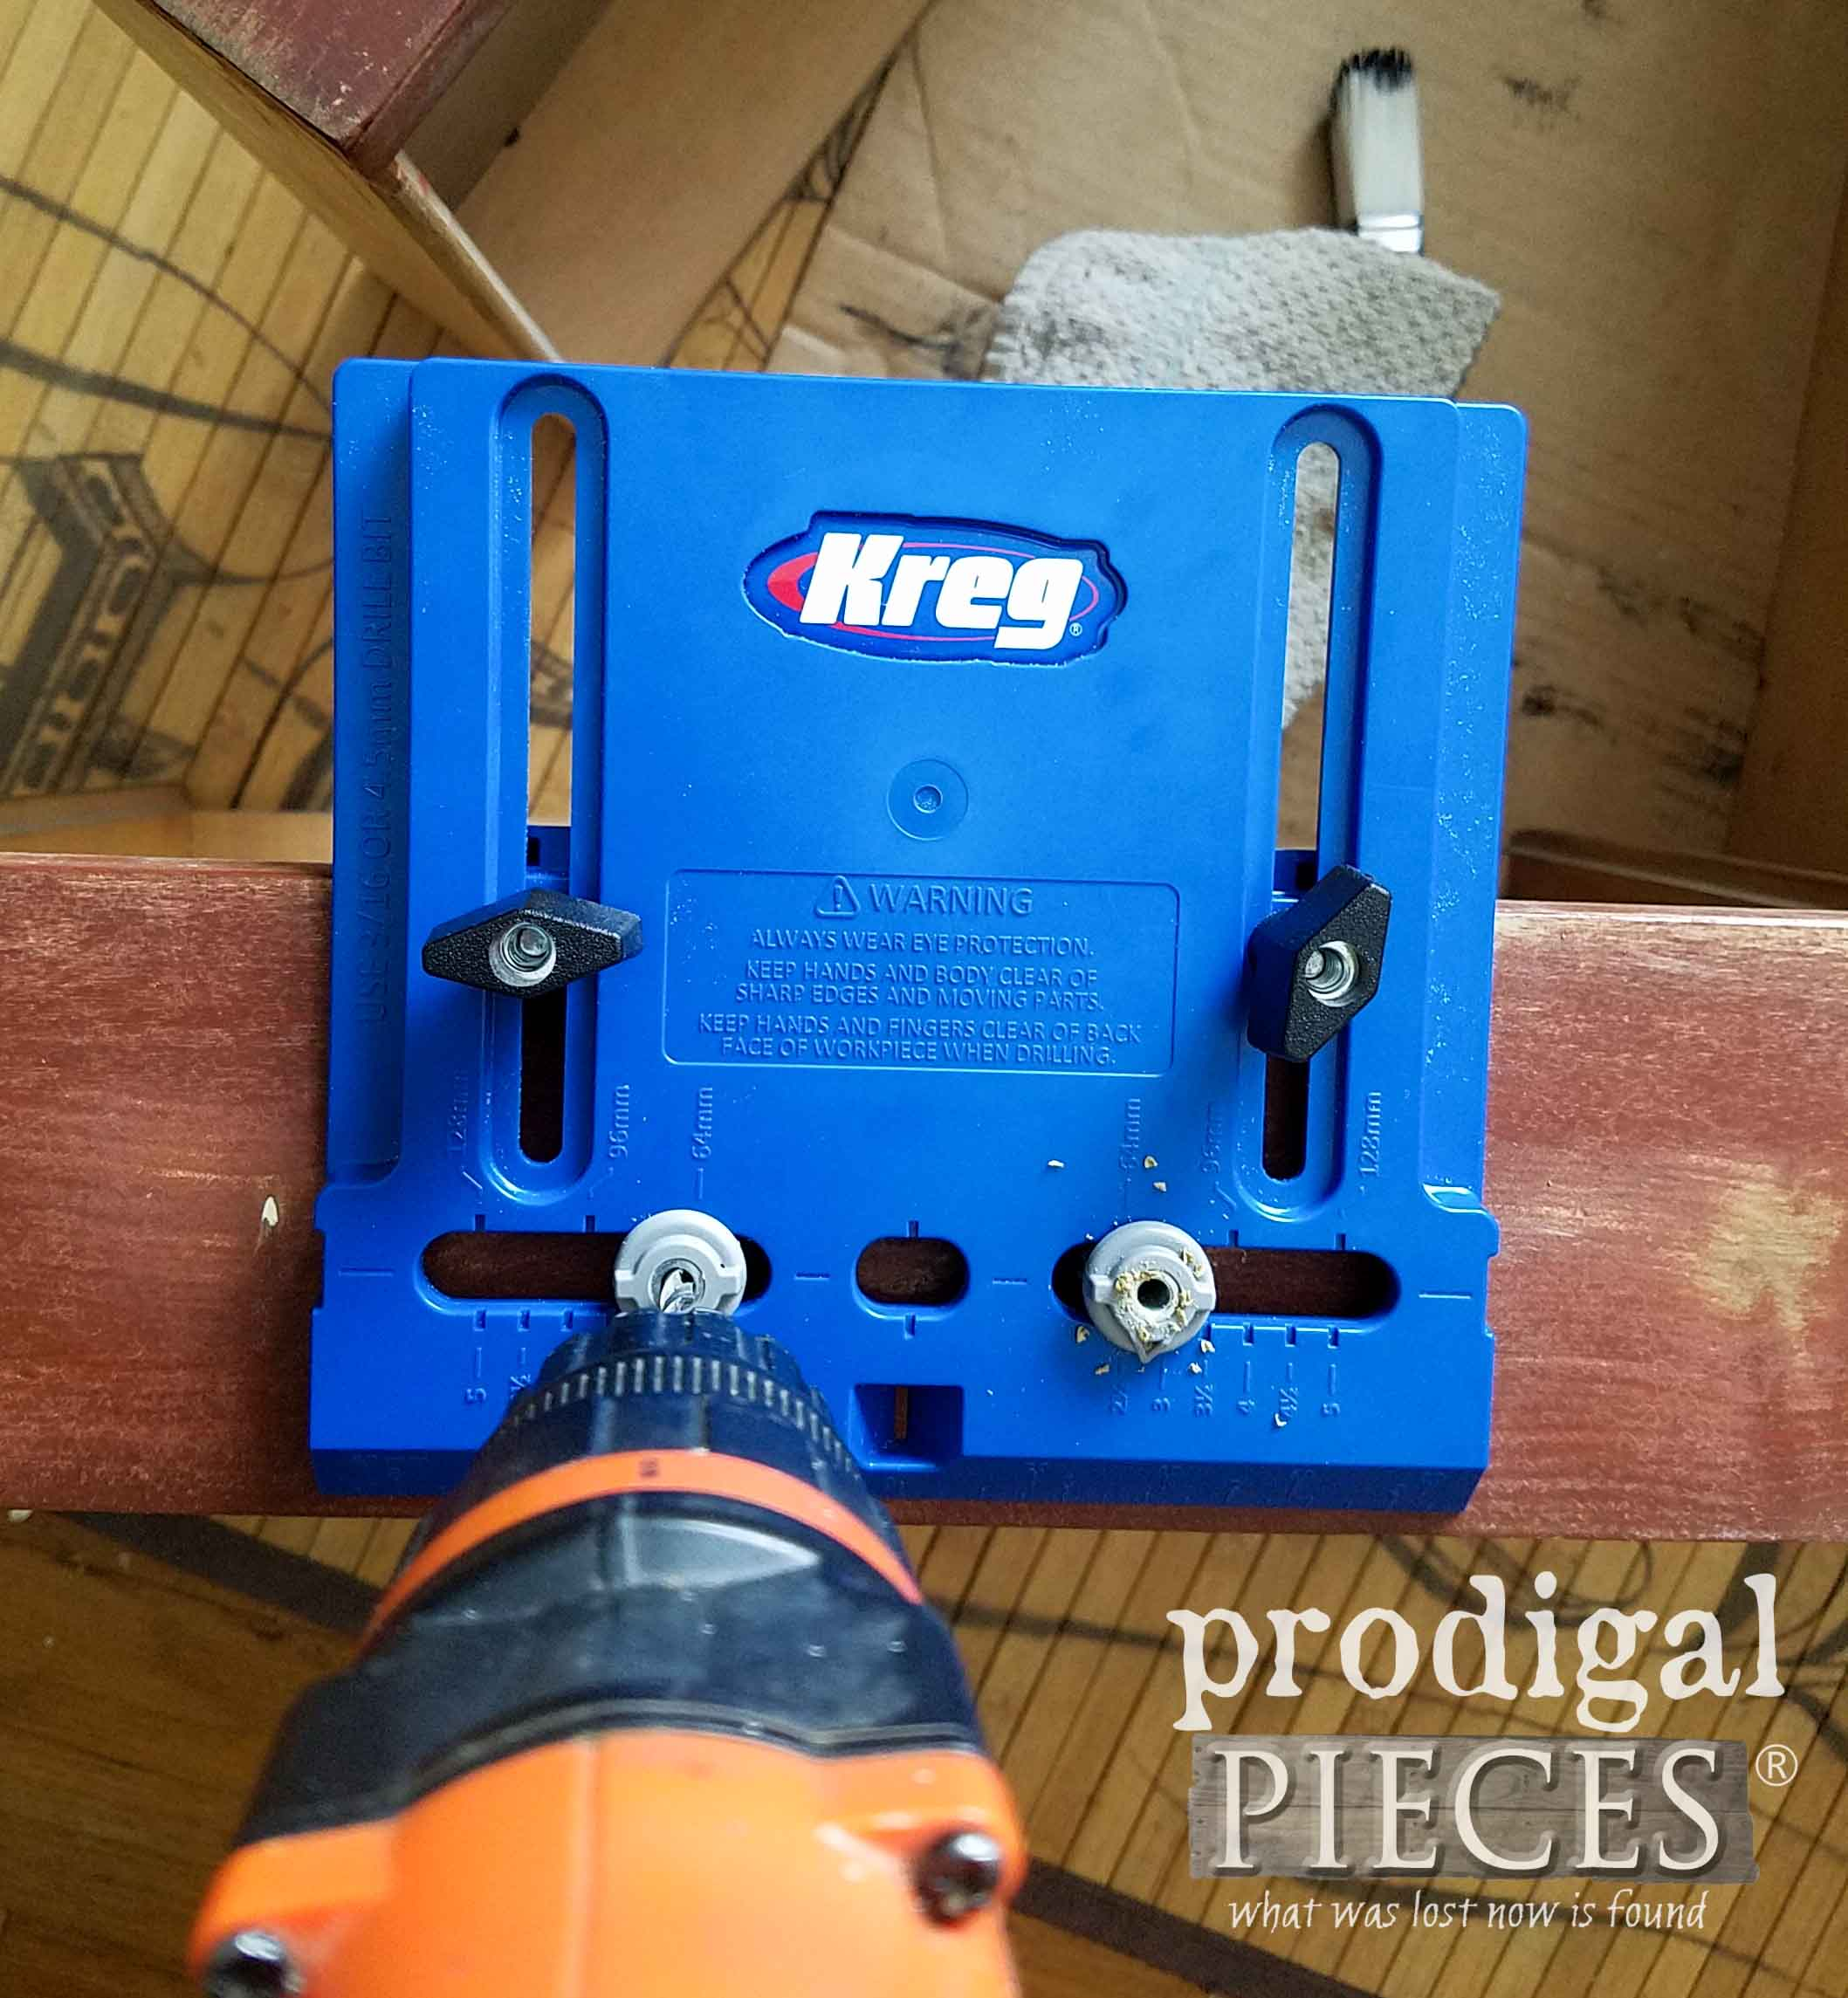 Kreg Drawer Pull Knob Jig for Furniture Restoration by Prodigal Pieces | prodigalpieces.com